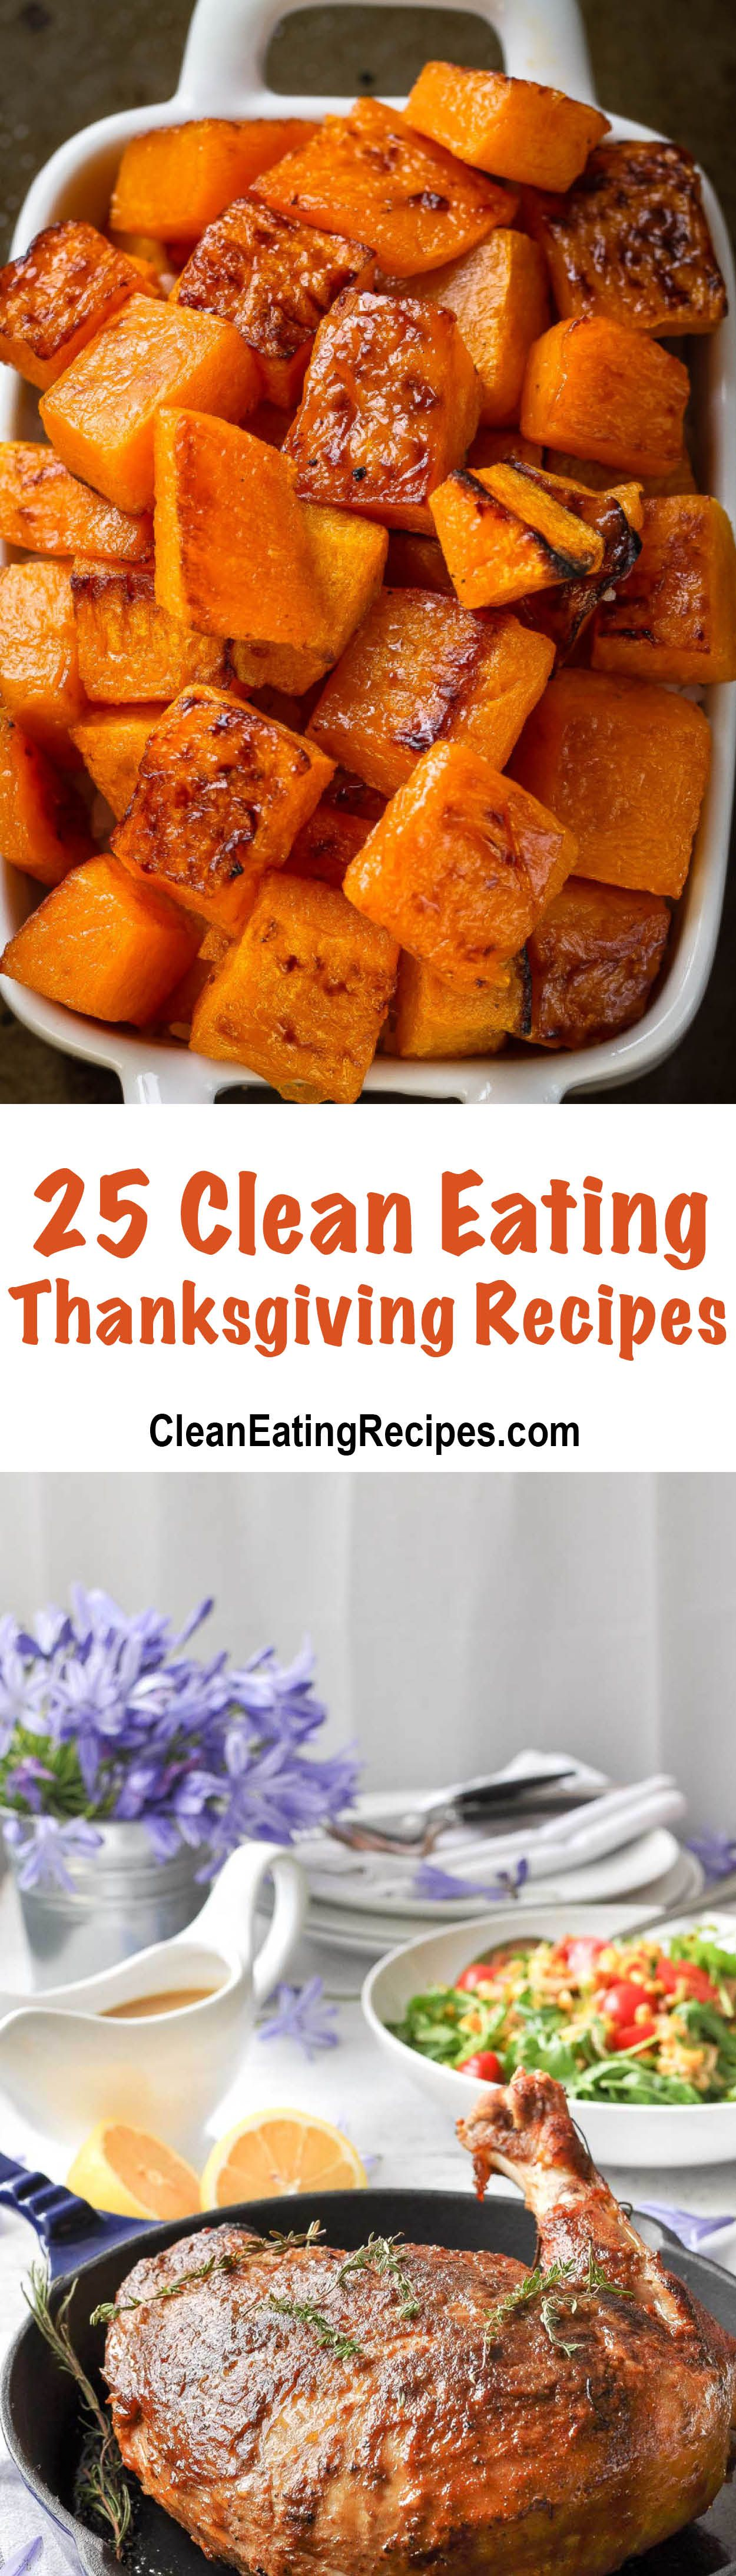 Want to make a great Thanksgiving dinner this year, you